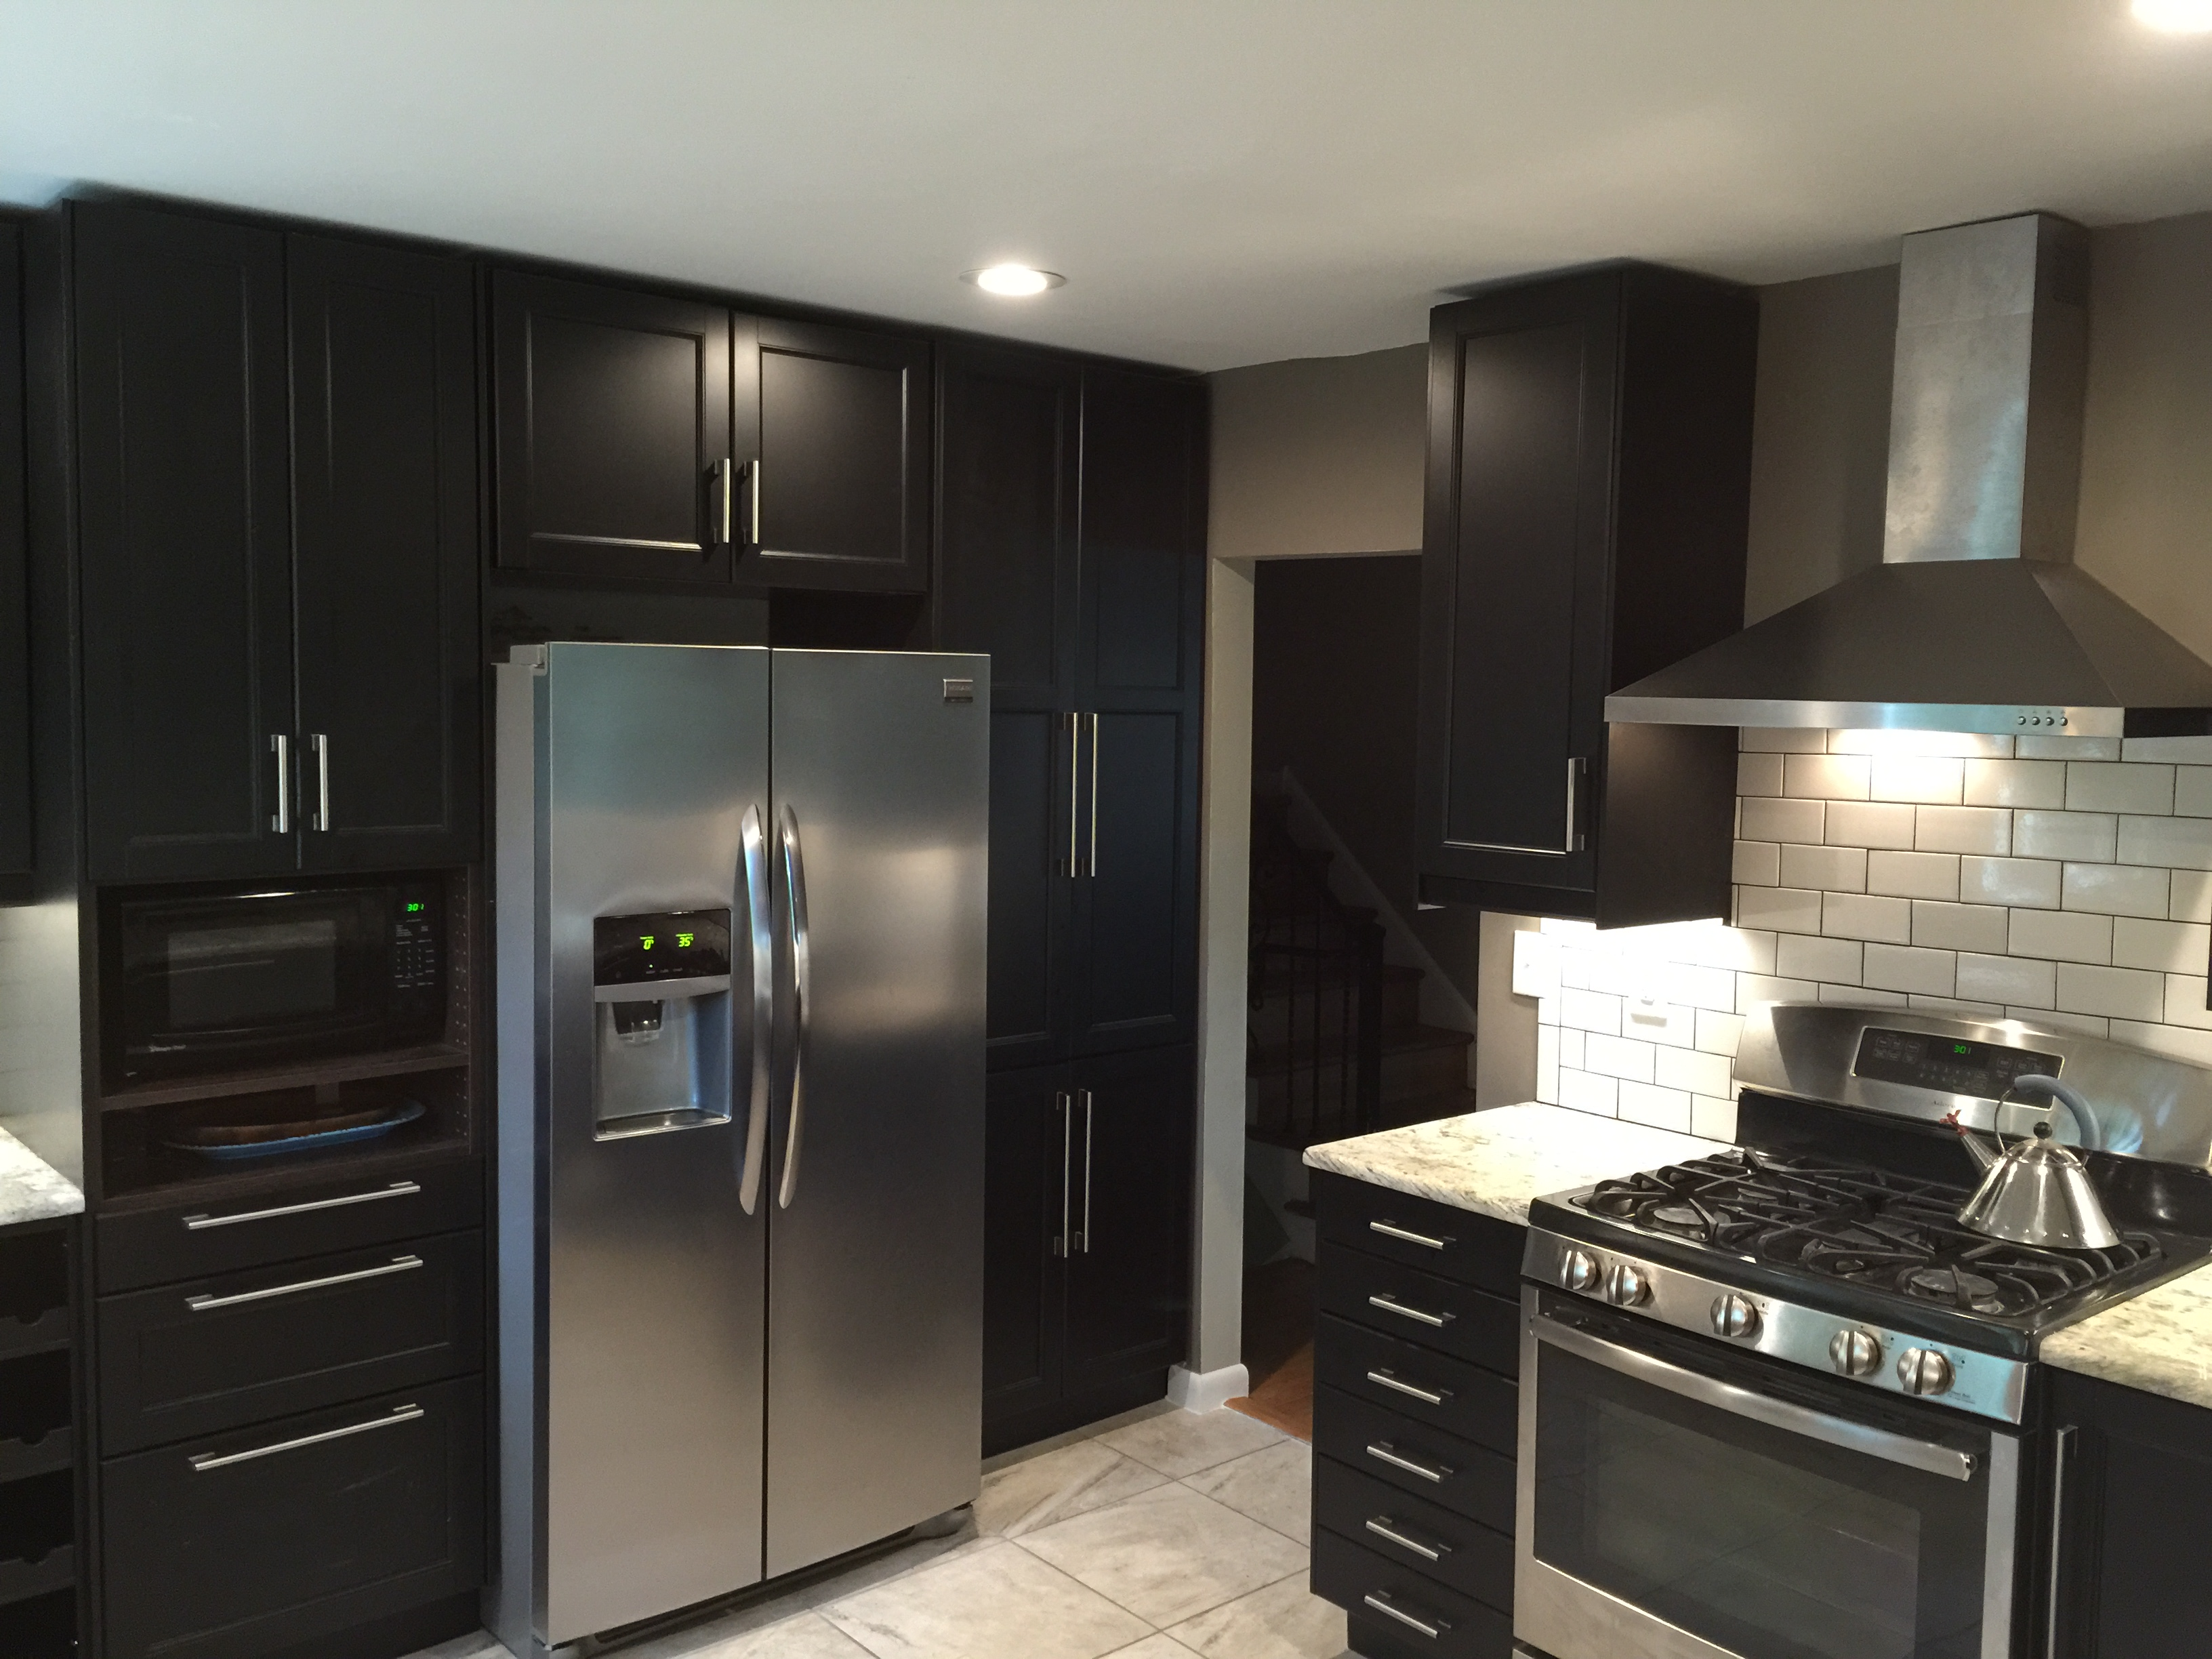 Custom Doors For Ikea Kitchen Cabinets An Ikea Kitchen Renovation For Serious Chefs With Style